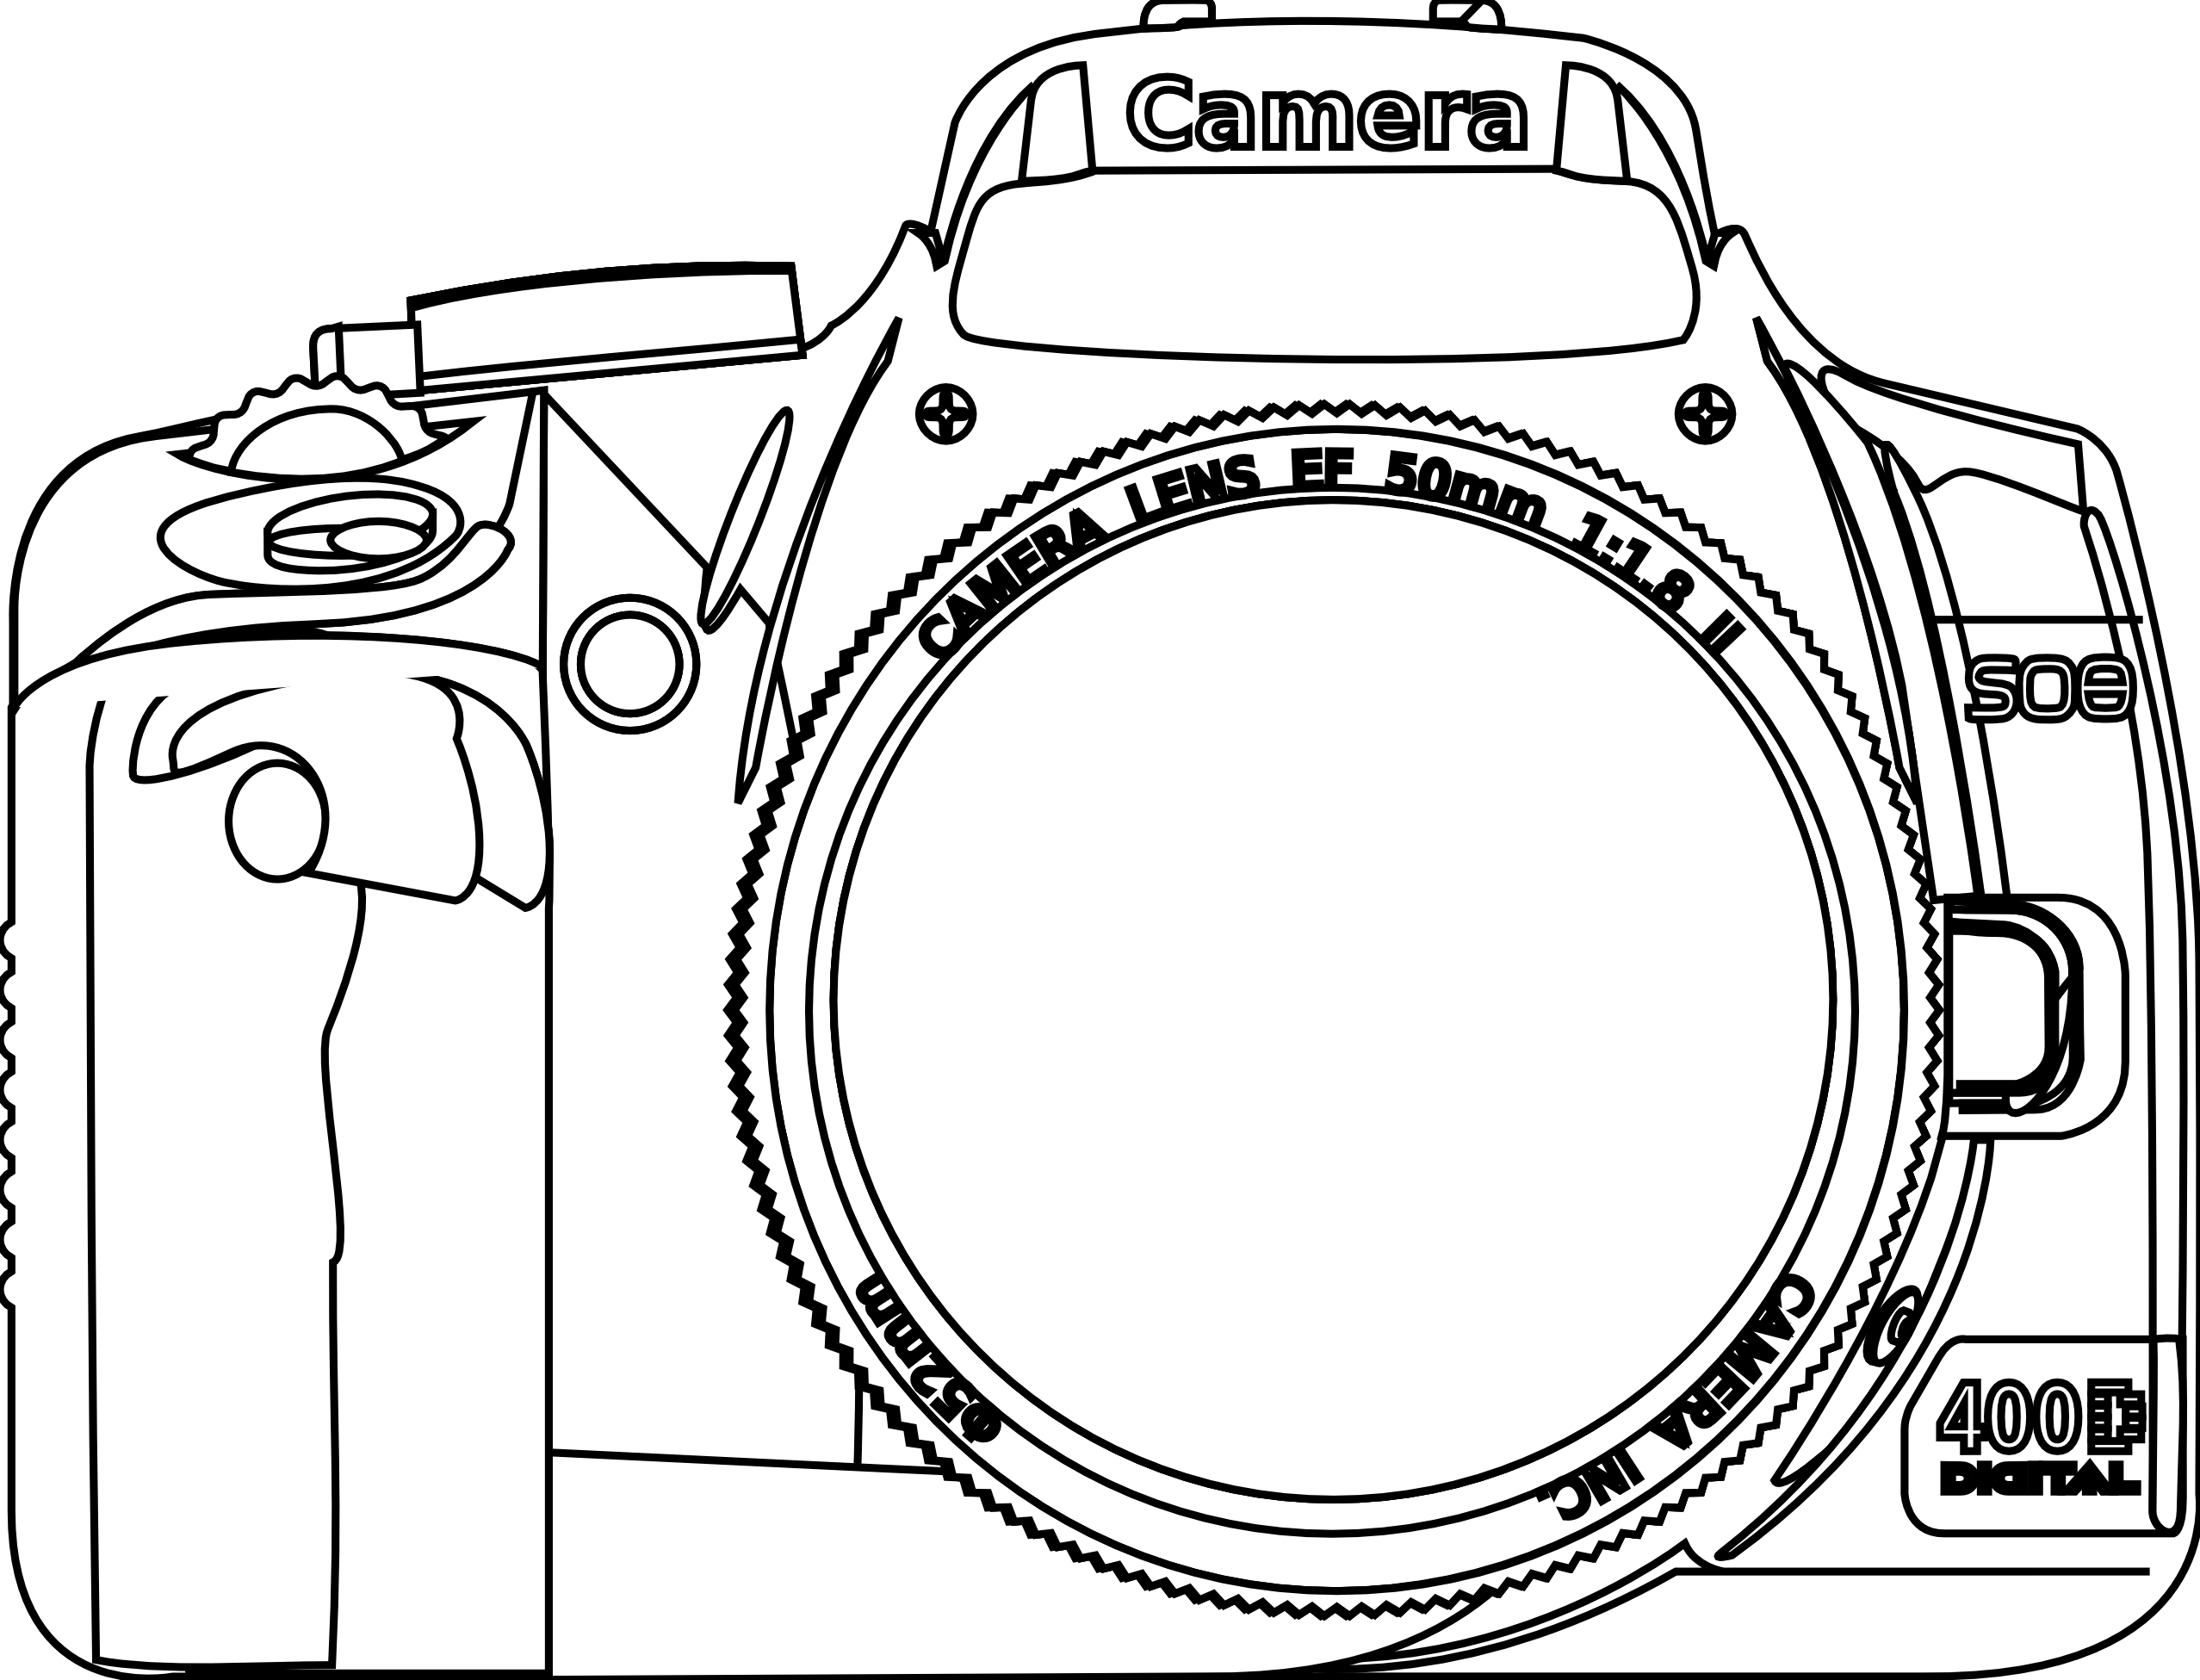 Nikon camera hd clipart.